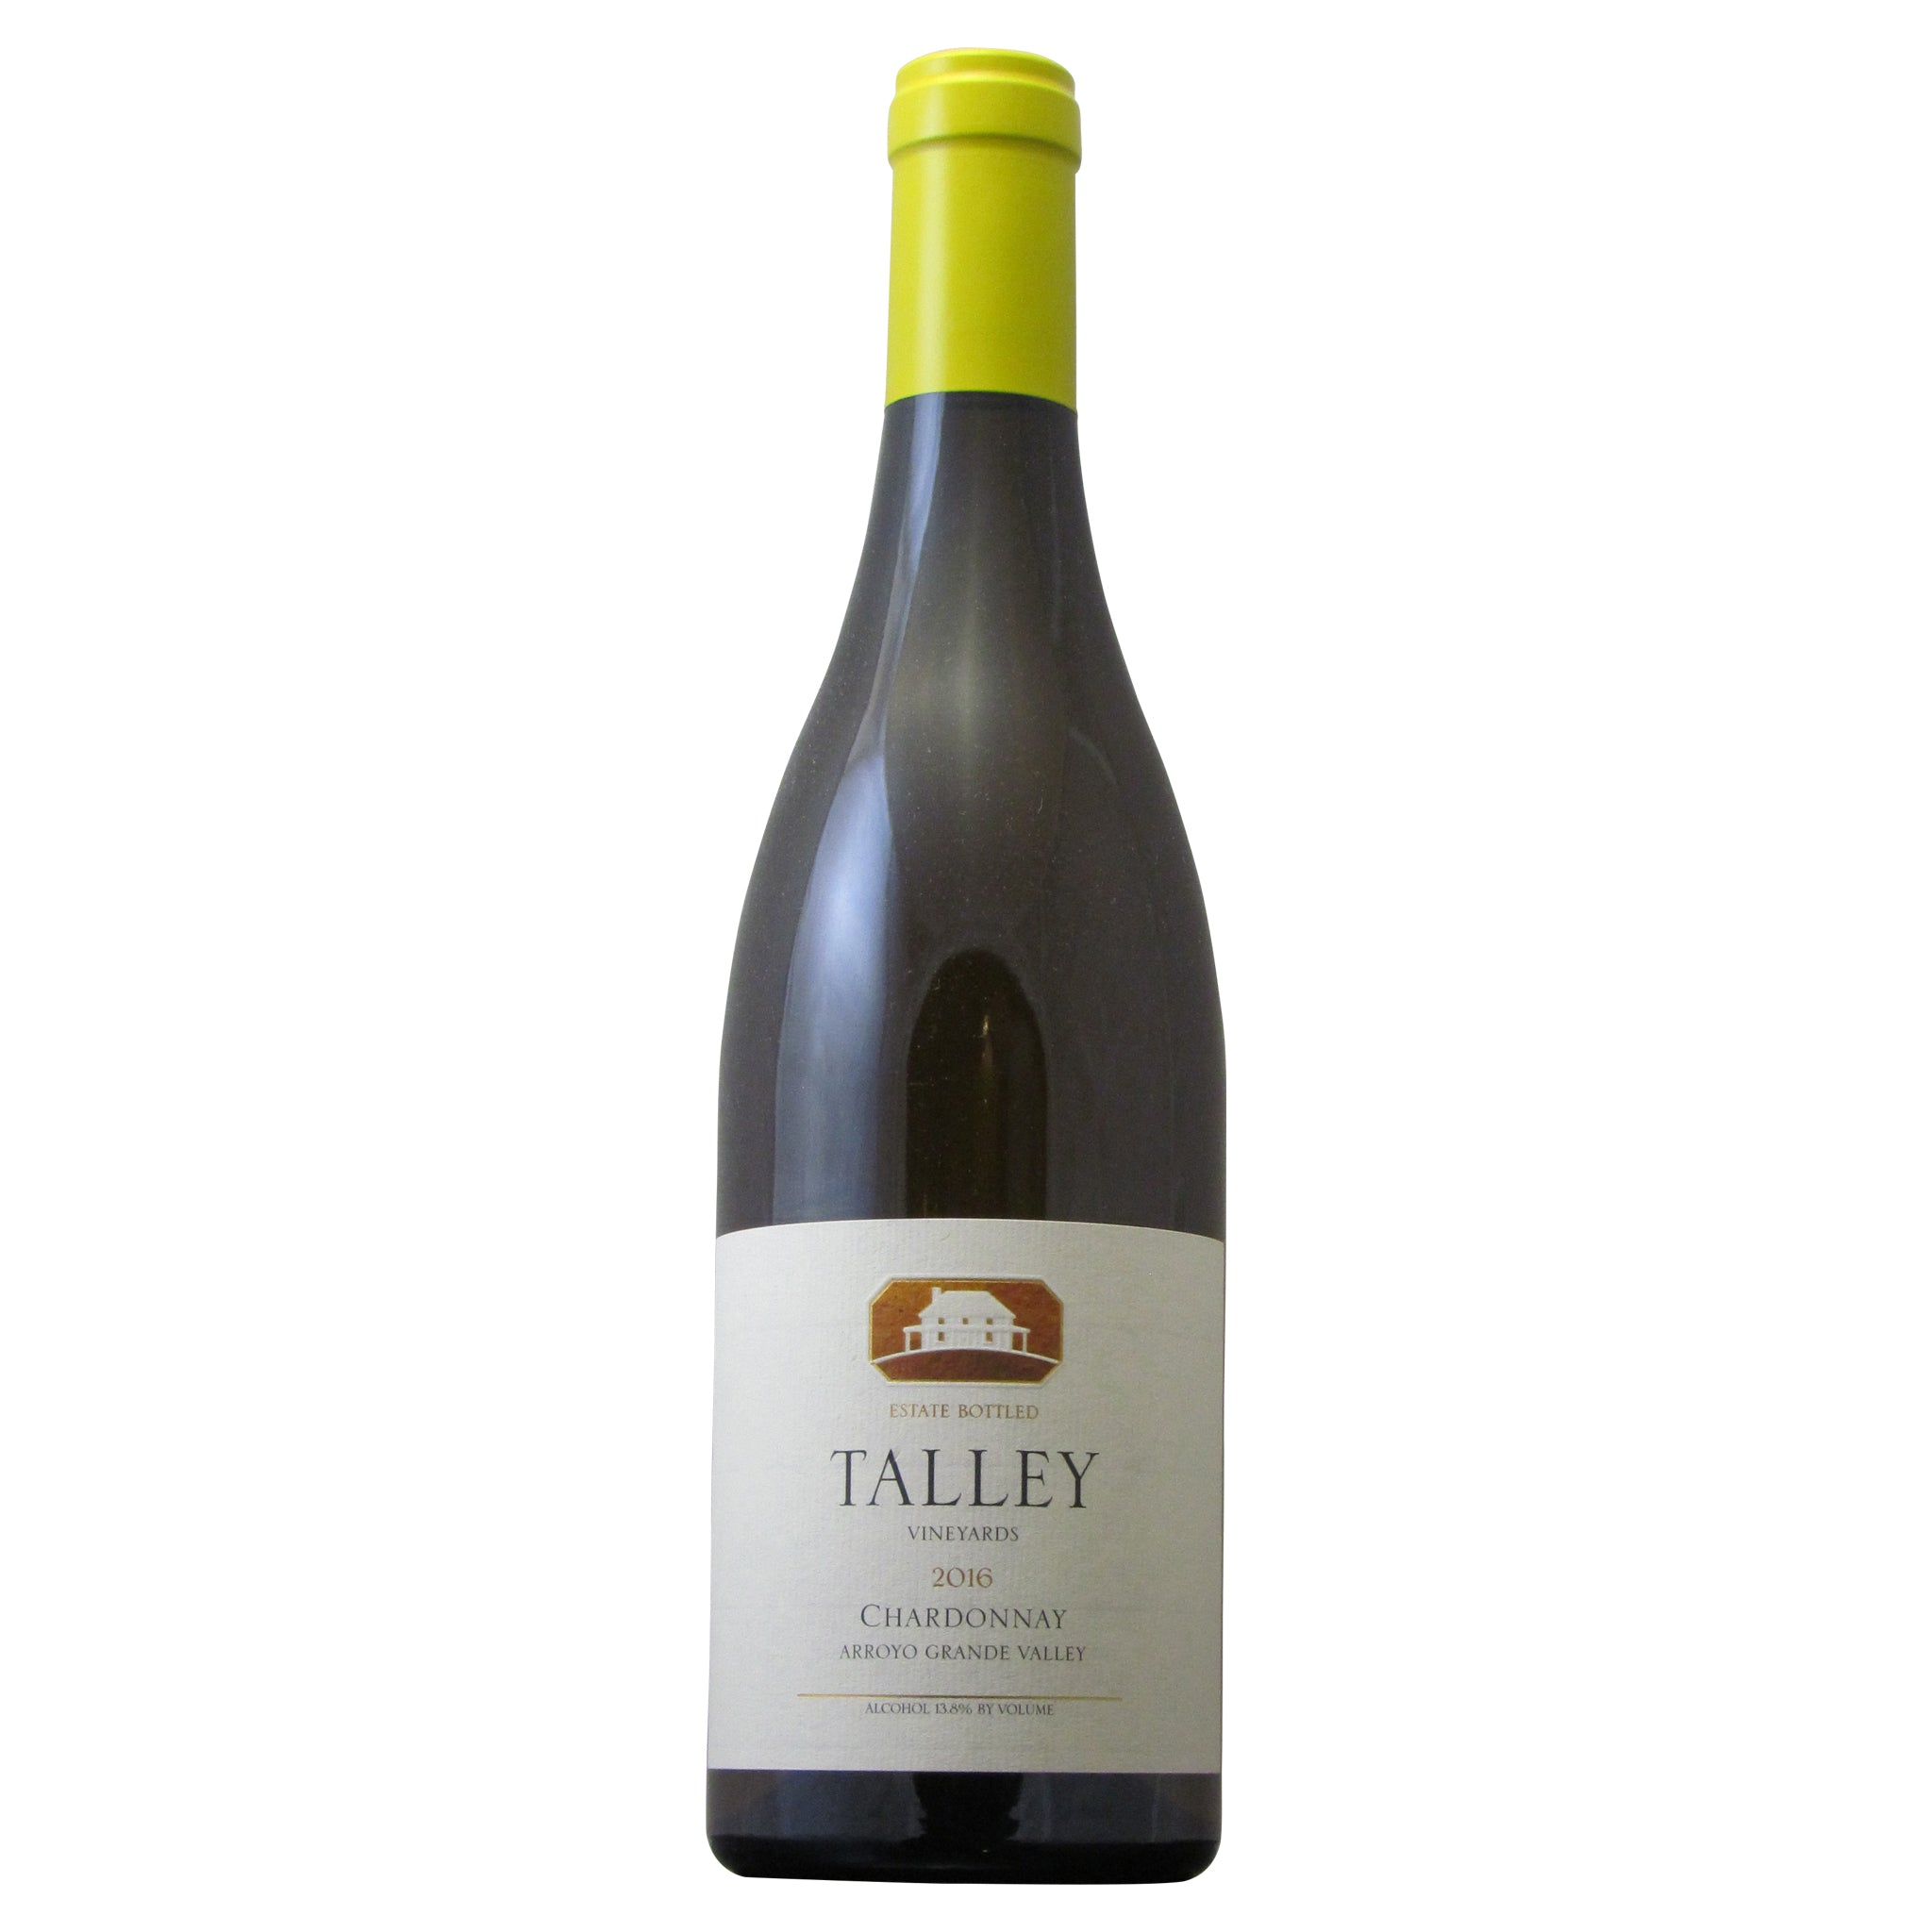 2017 Talley Chardonnay Arroyo Grande Valley